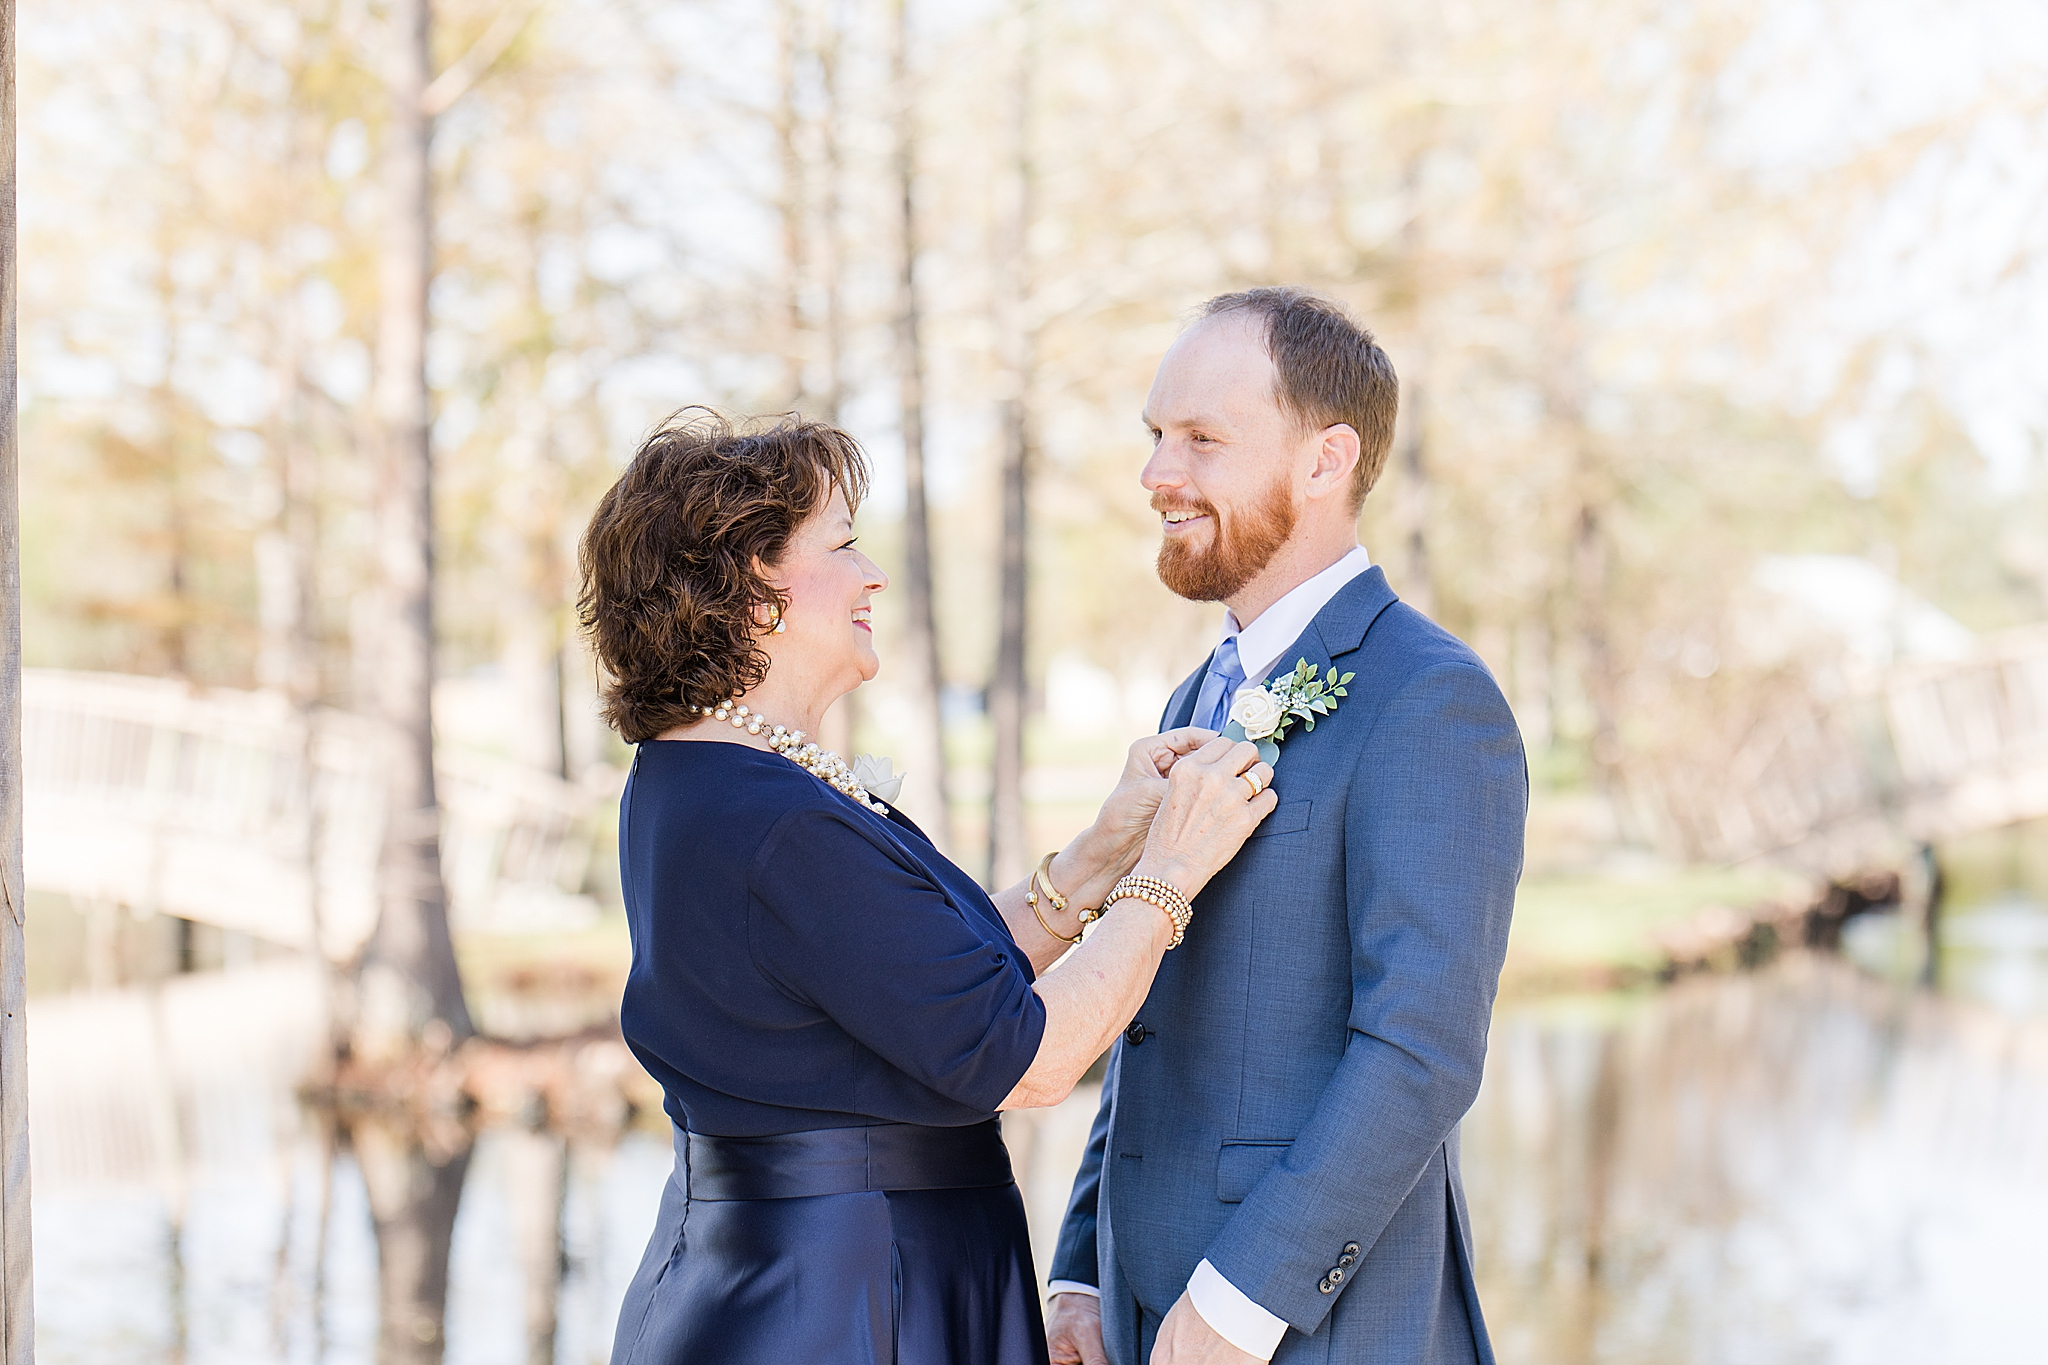 mother of groom helps with boutineere